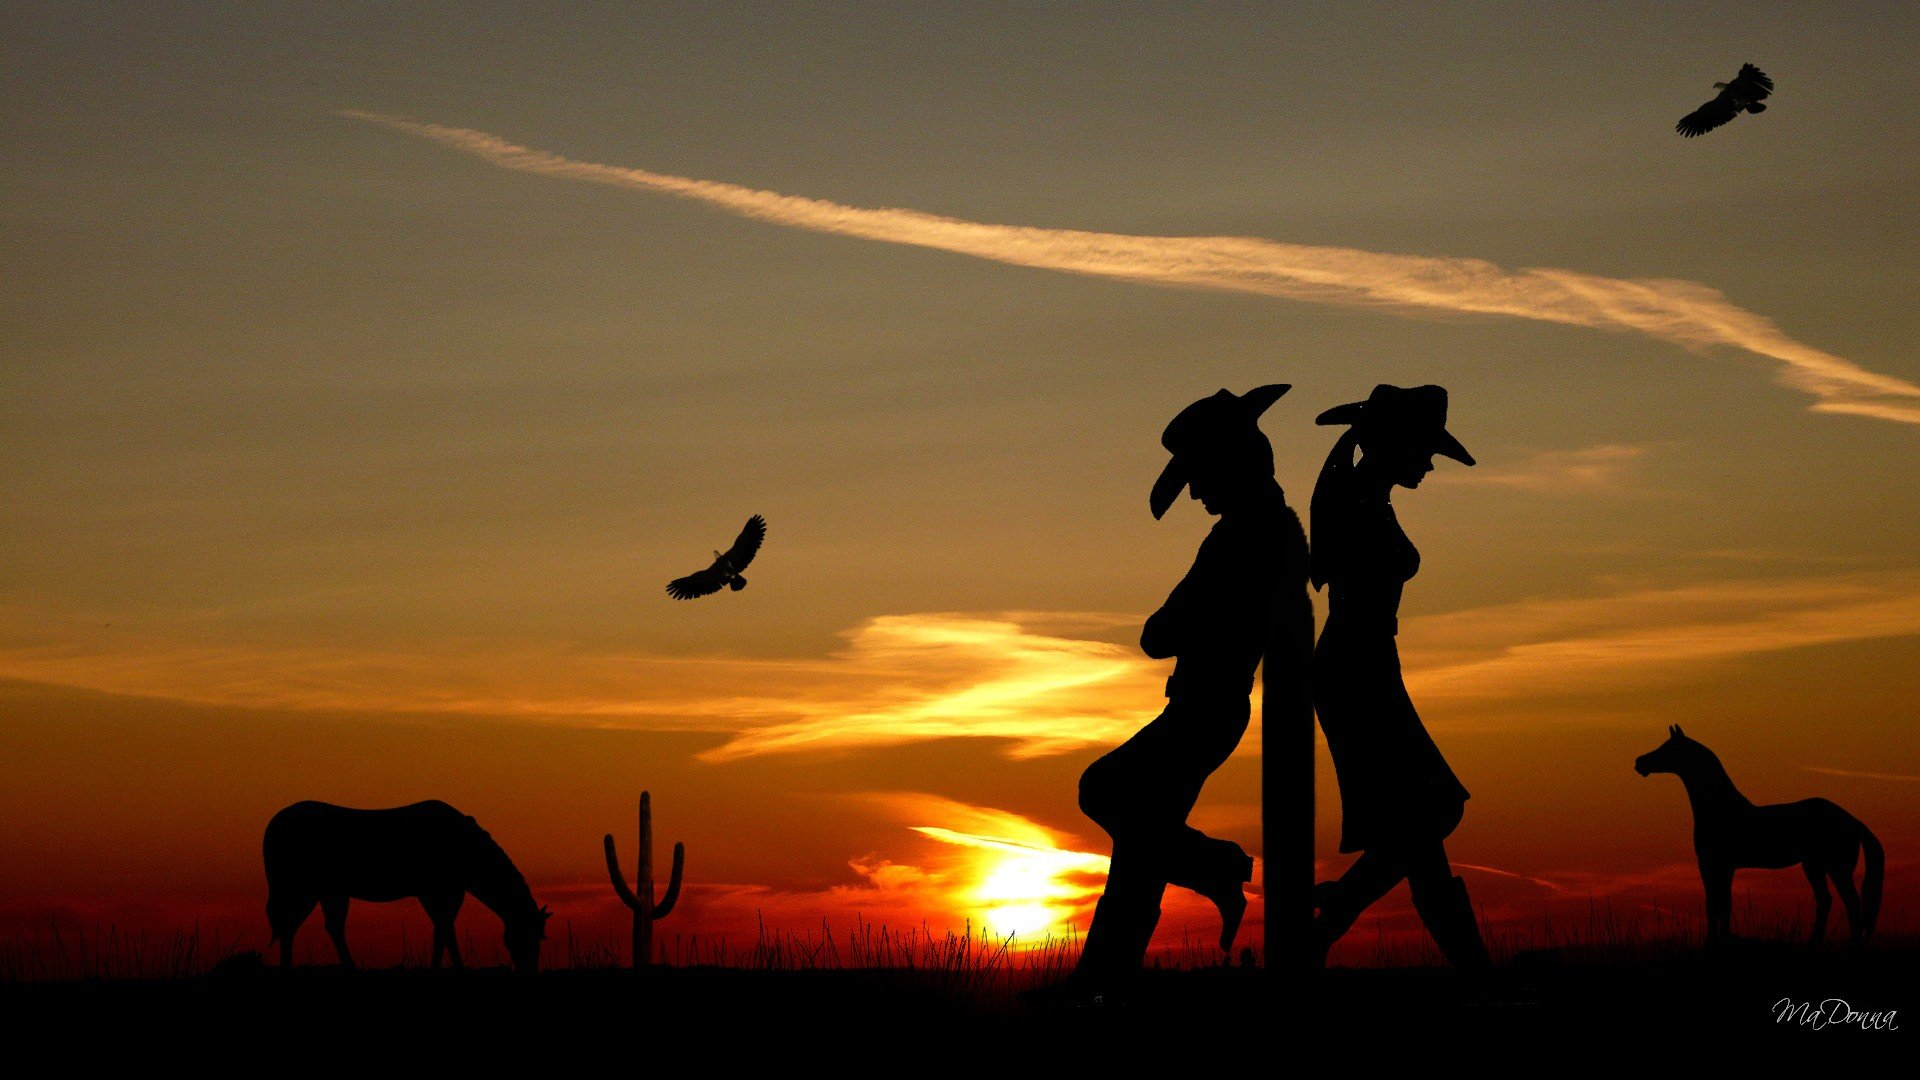 Western Cowboy Wallpaper Images Pictures   Becuo 1920x1080